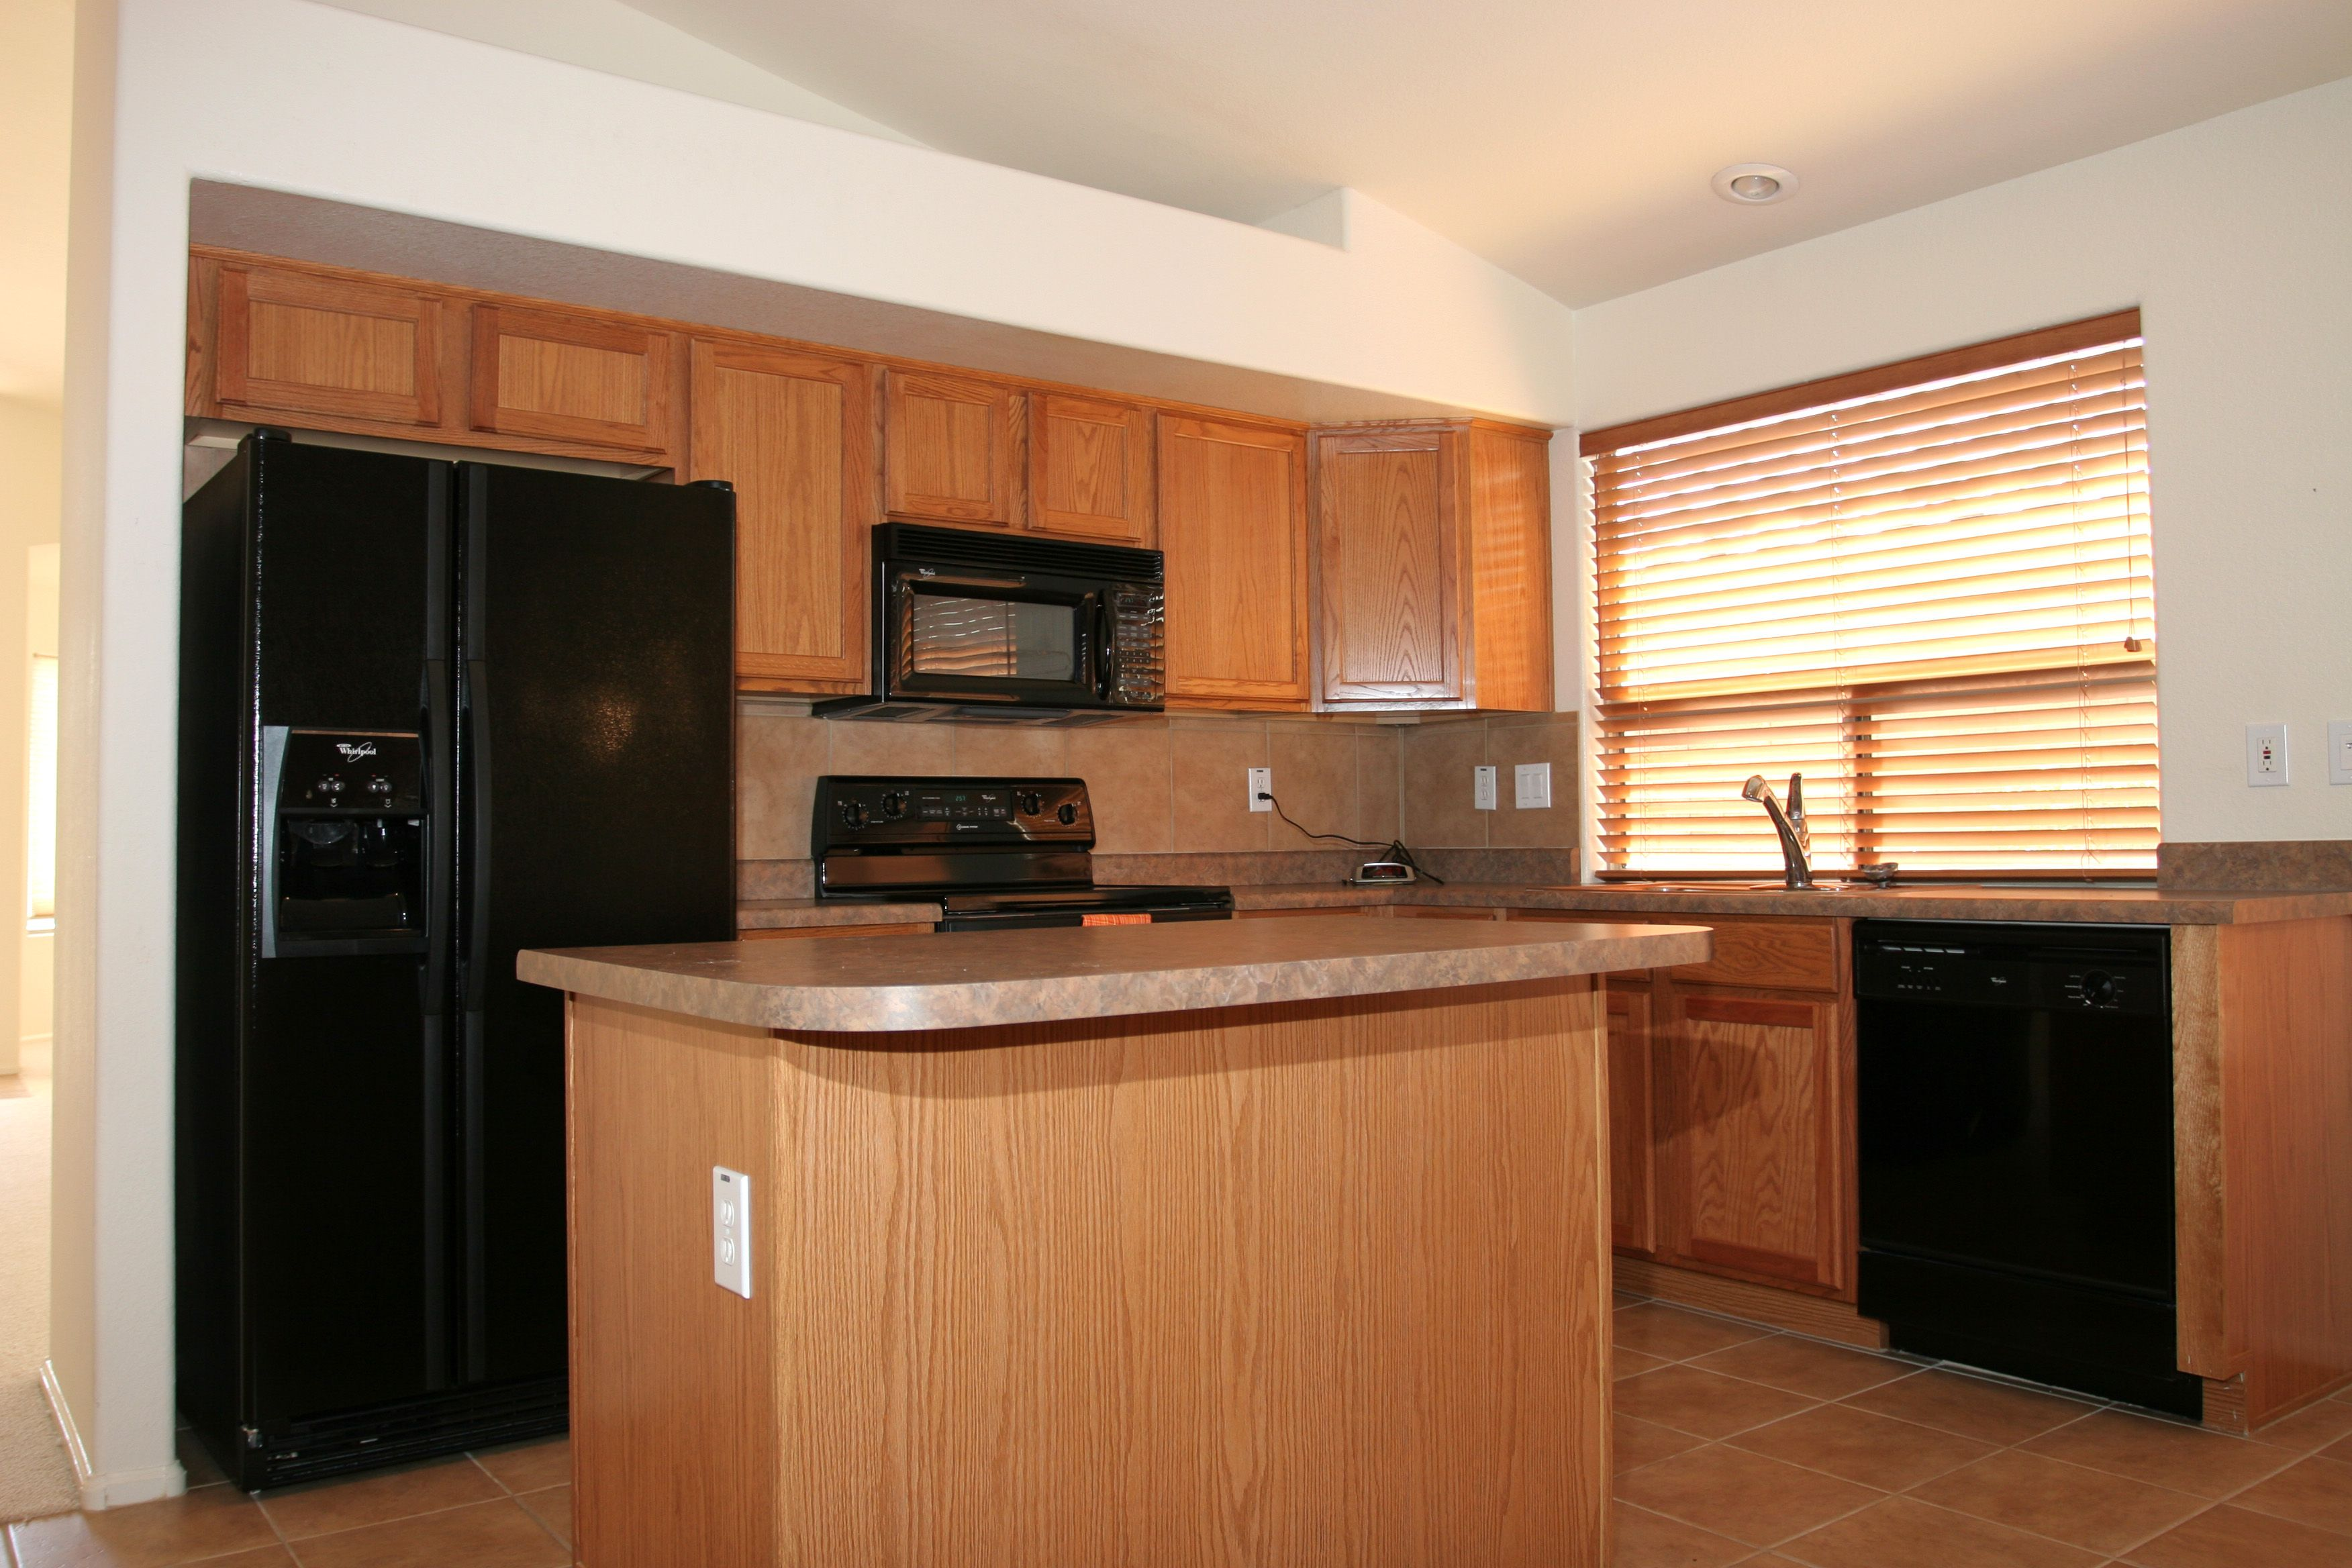 Kitchen Black Appliances Photo Gallery Homes Of The Future To Be More Luxurious Phoenix Area